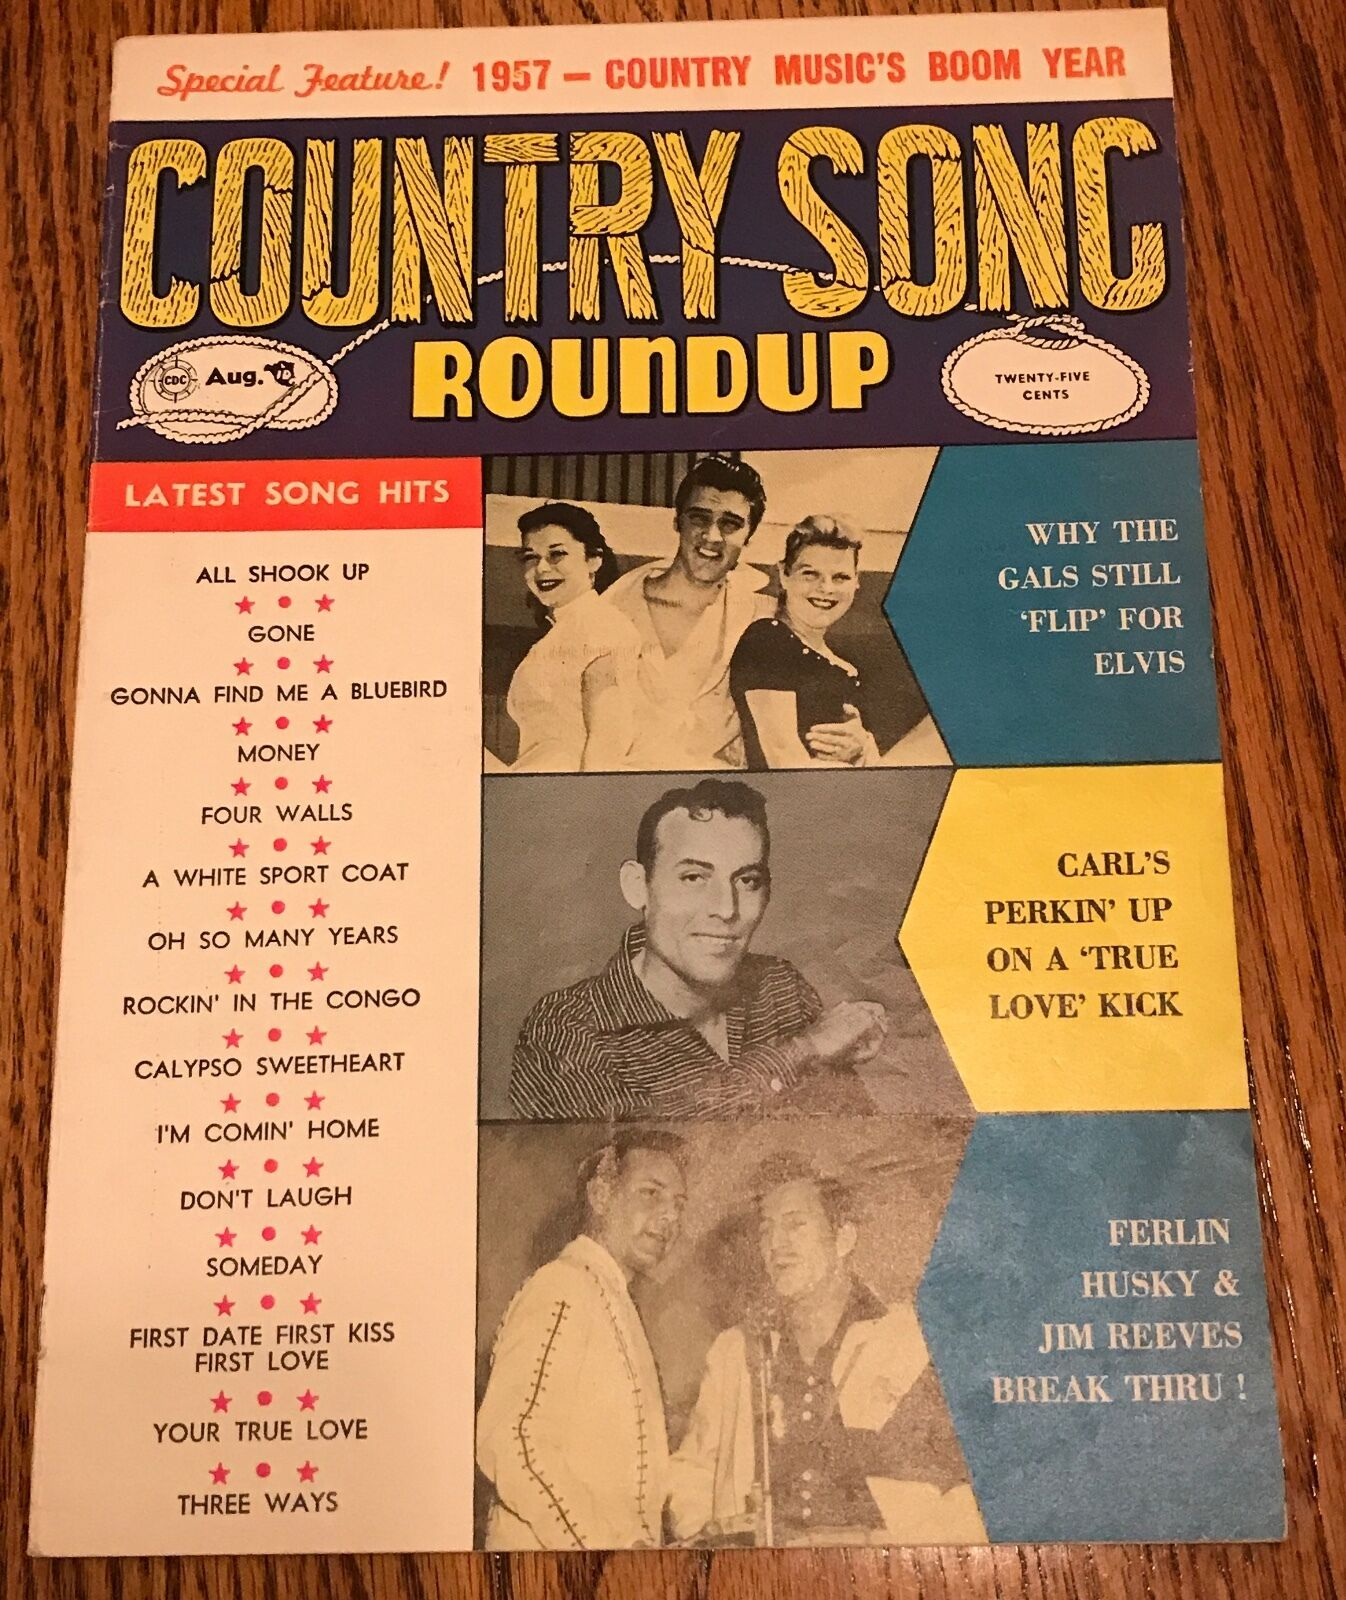 ELVIS COUNTRY SONG Roundup Magazine 1957 - $149.00 | PicClick